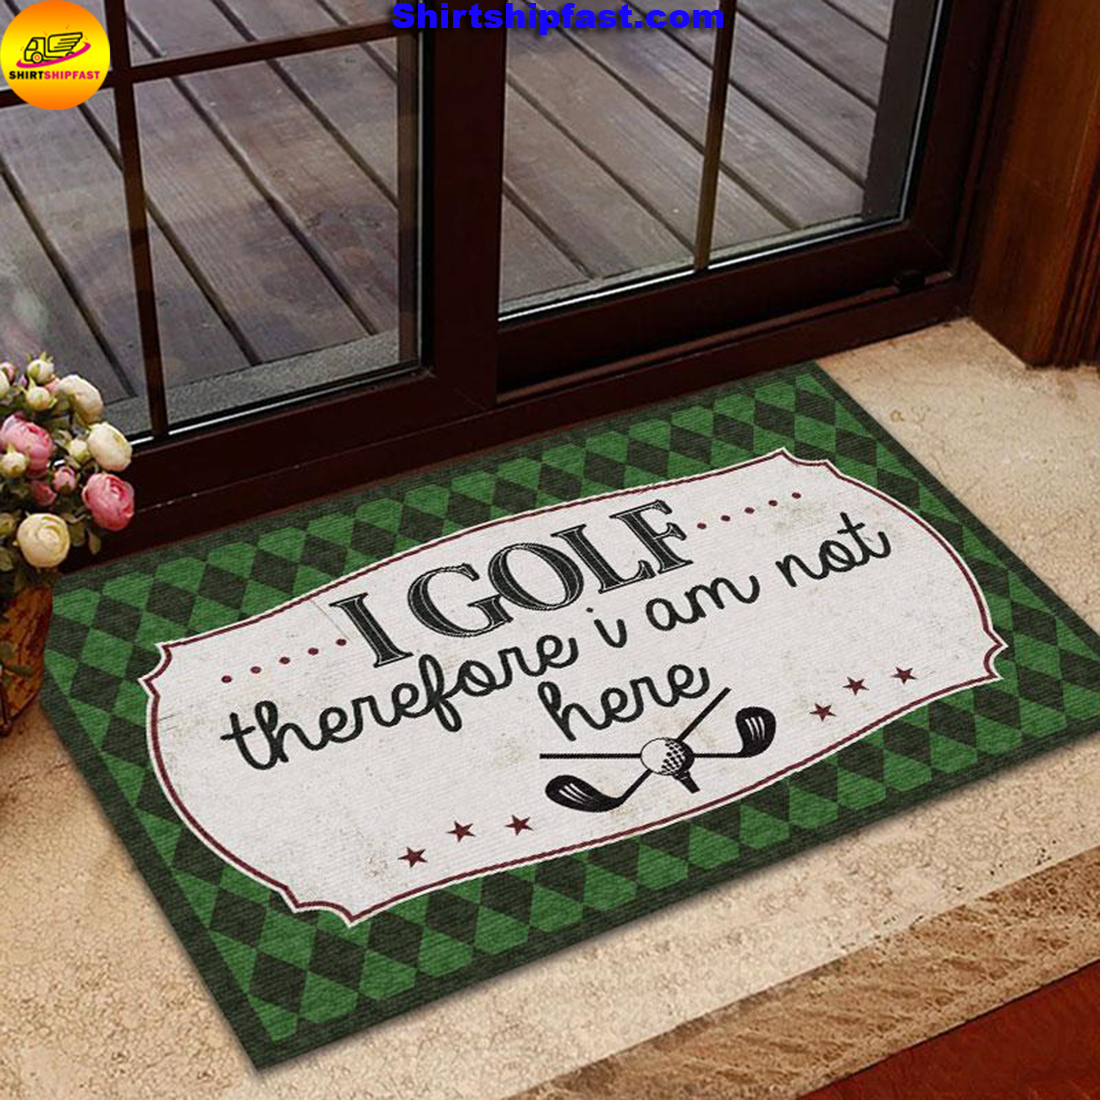 I golf therefore I am not here doormat - Picture 1